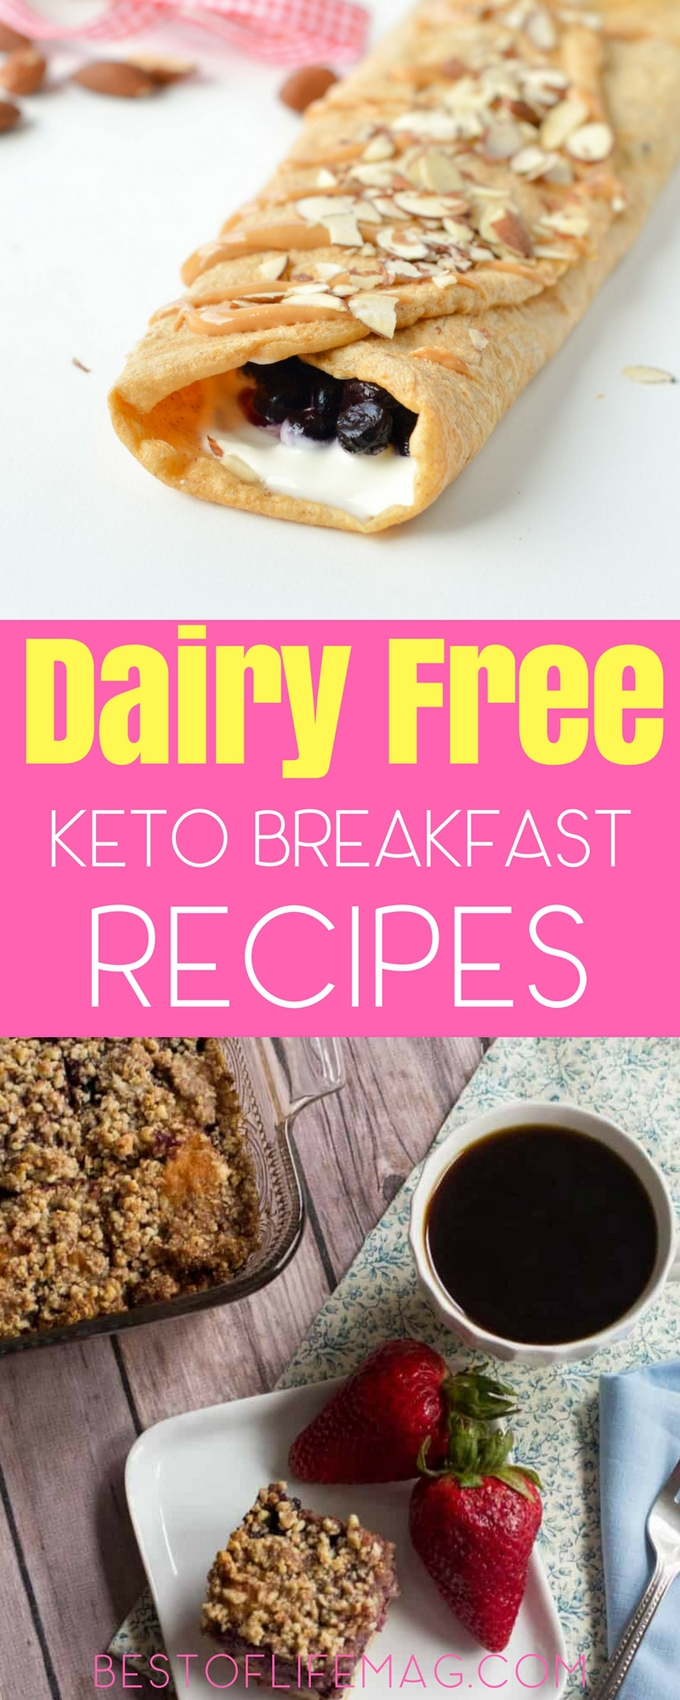 Use the best dairy free keto breakfast recipes to start your day, every day and meet your weight loss goals in a healthy way. Dairy Free Recipes | Best Dairy Free Recipes | Easy Dairy Free Recipes | Dairy Free Keto Recipes | Best Dairy Free Keto Recipes | Easy Dairy Free Keto Recipes | Dairy Free Breakfast Recipes | Easy Dairy Free Breakfast Recipes | Best Dairy Free Breakfast Recipes | Low Carb Dairy Free Breakfast Recipes | Best Low Carb Dairy Free Breakfast Recipes